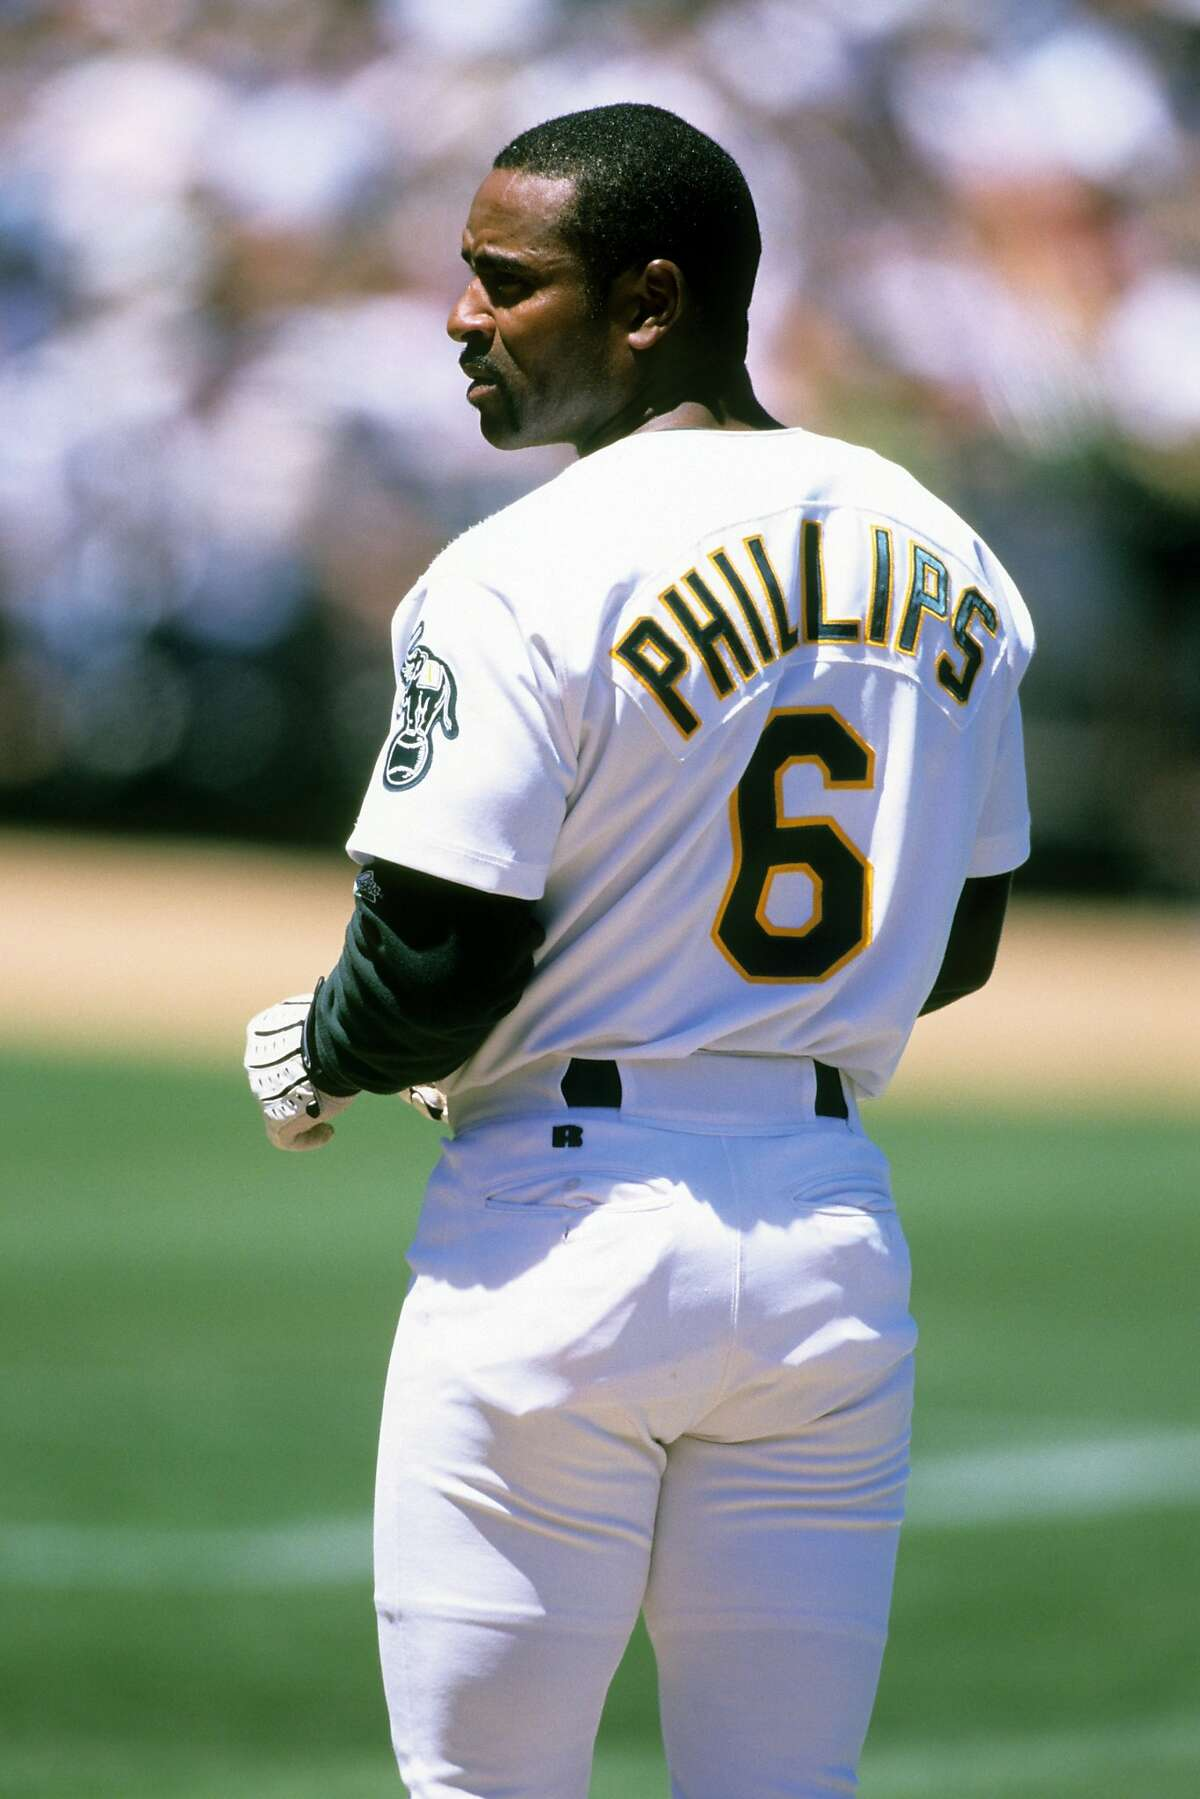 Tony Phillips of the Oakland Athletics looks on during the game against the Los Angeles Dodgers at Network Associates Coliseum on June 13, 1999 in Oakland, California.